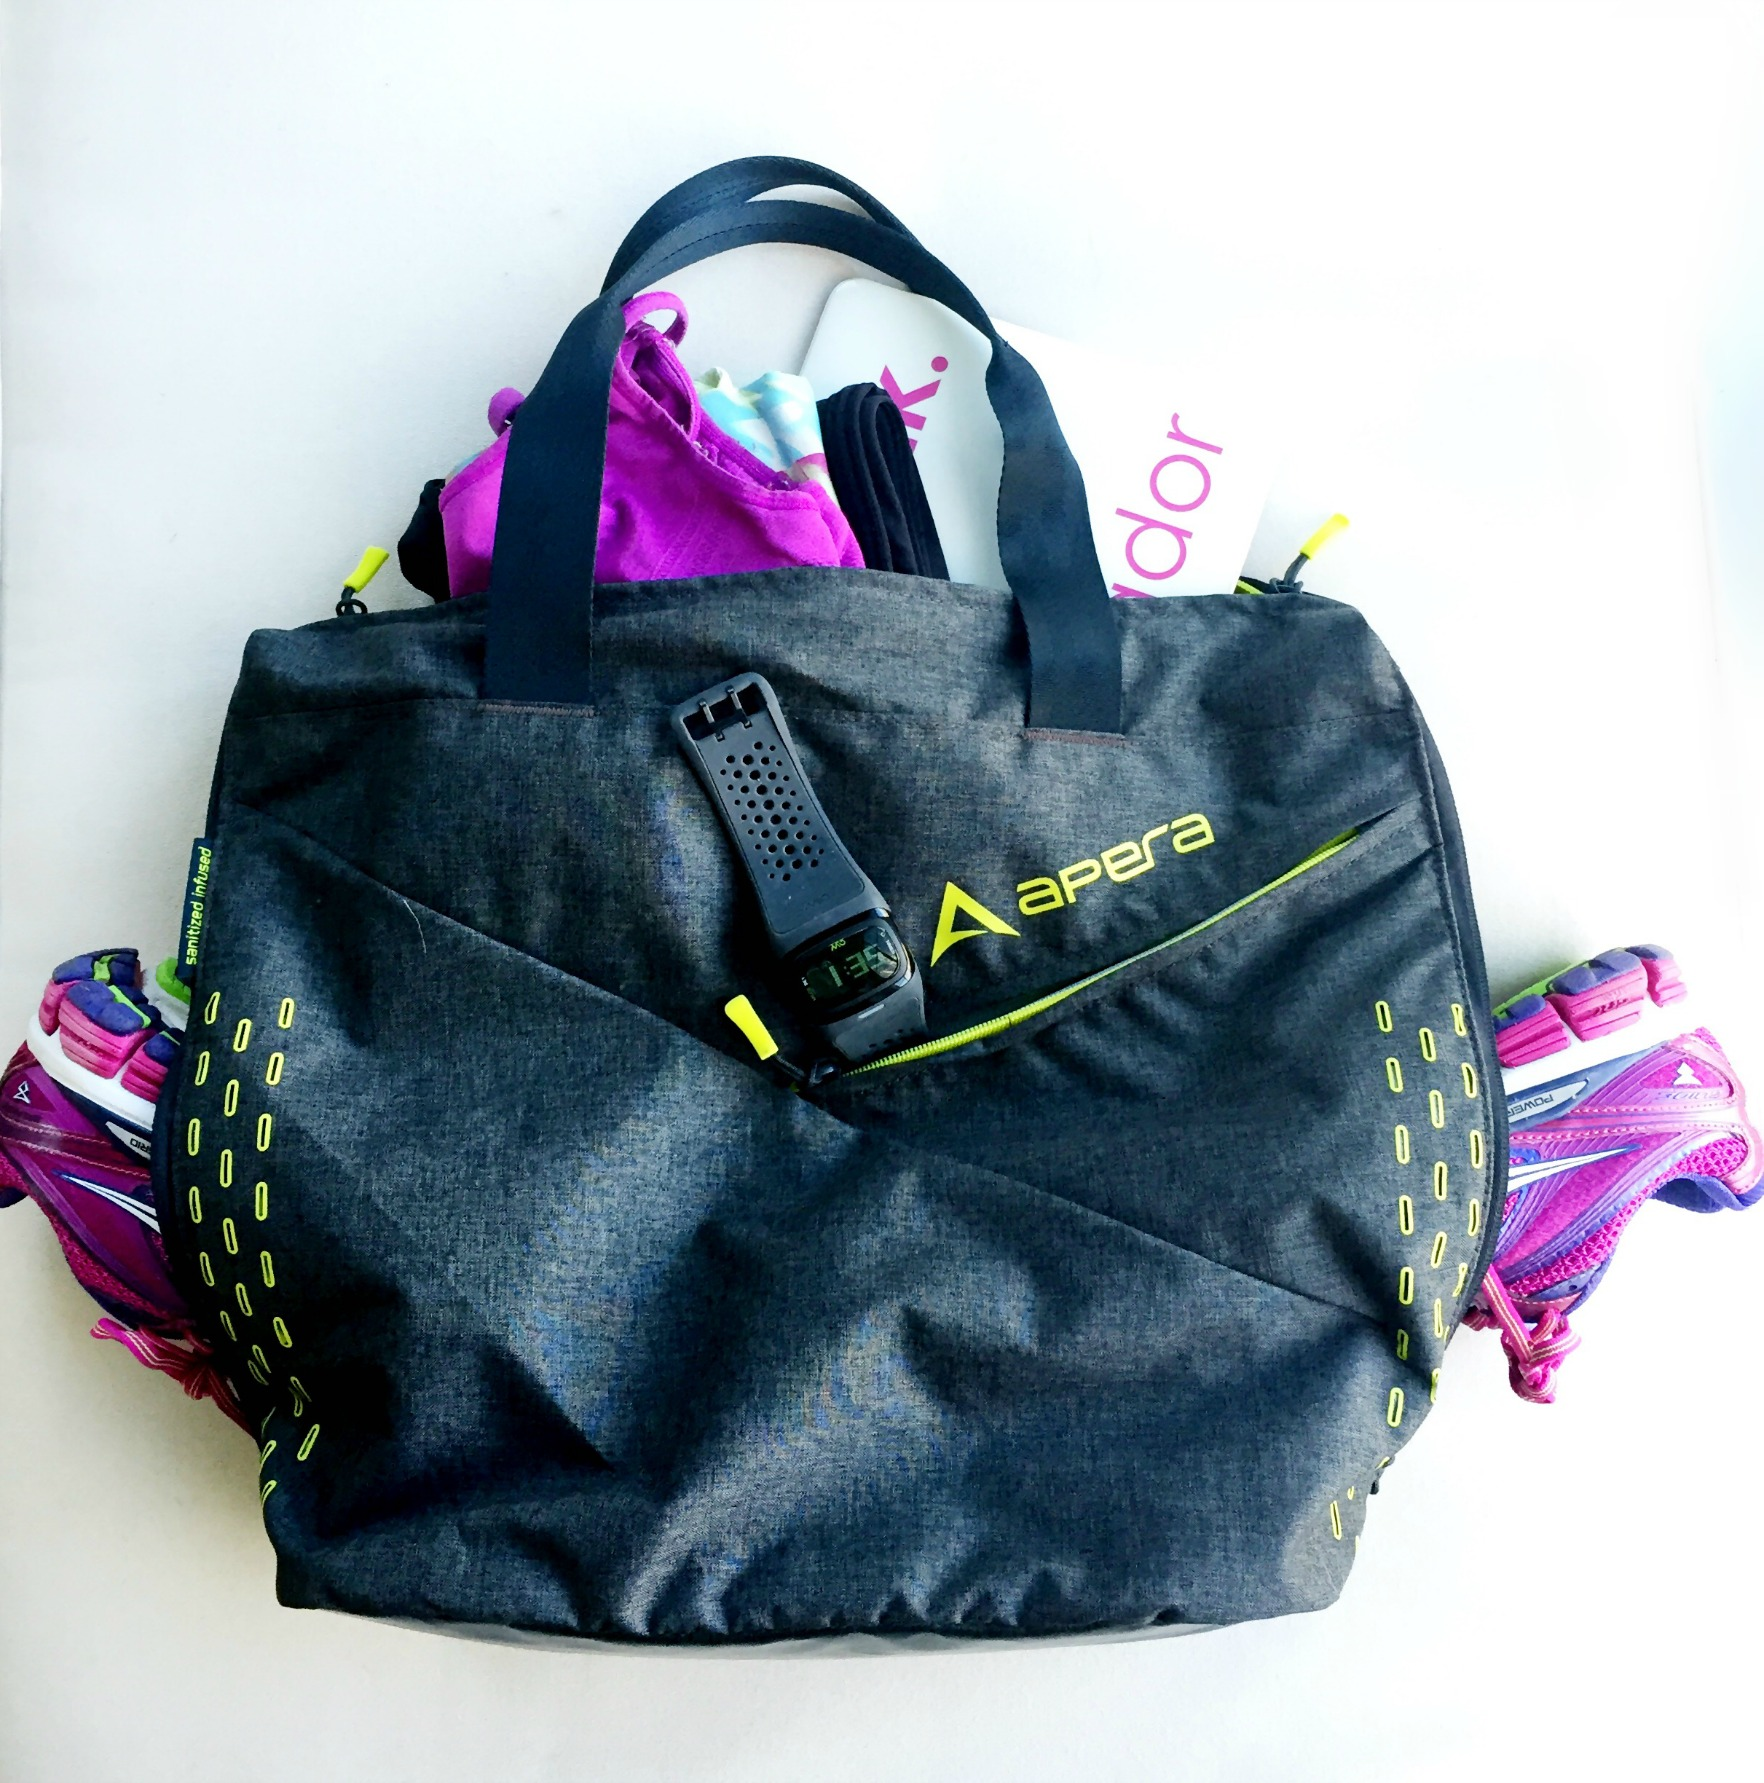 Apera Bags Studio Tote Review and Giveaway